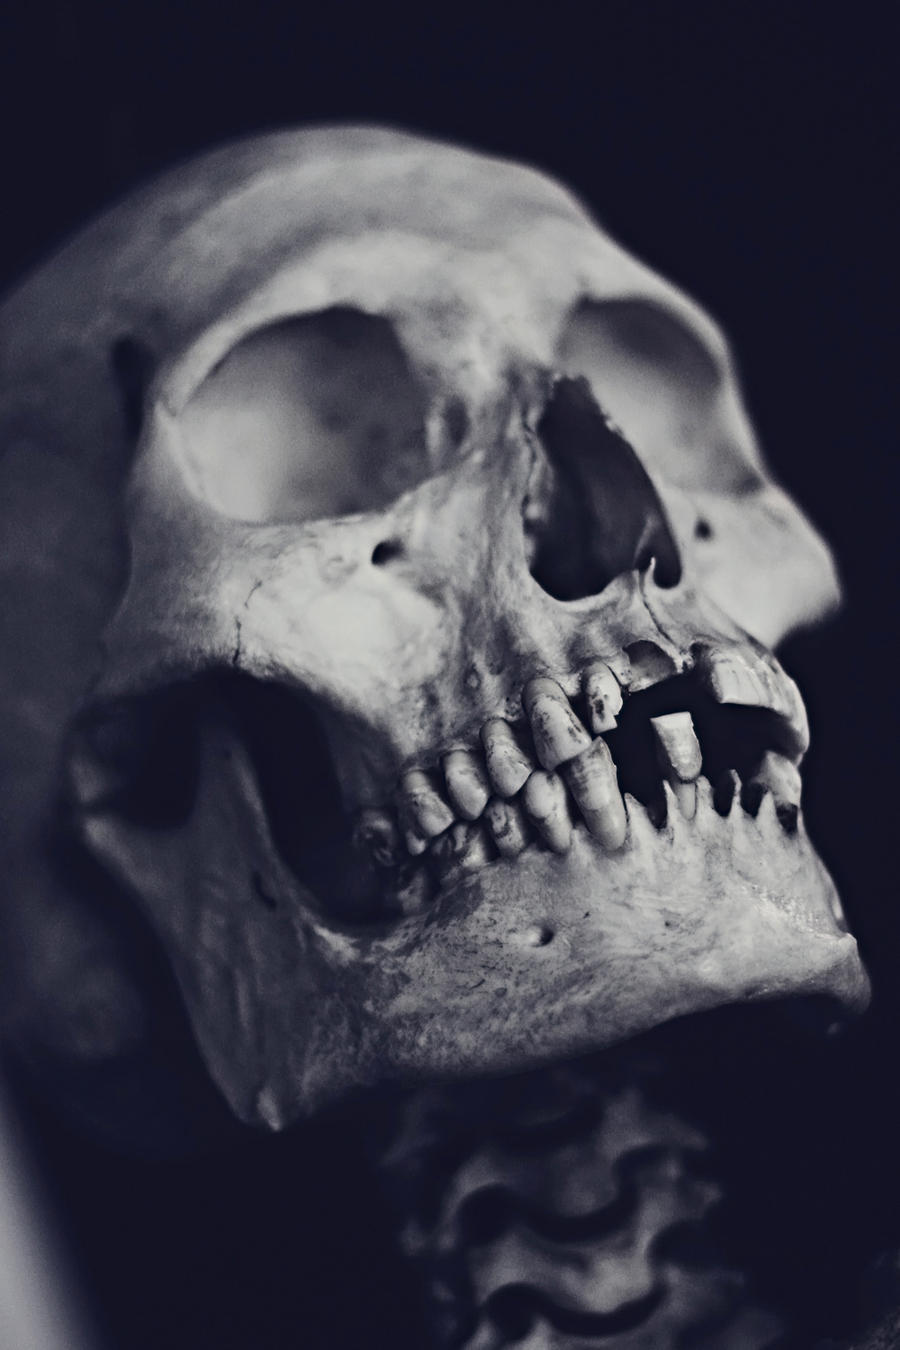 Human Skull by PurpleRook on DeviantArt